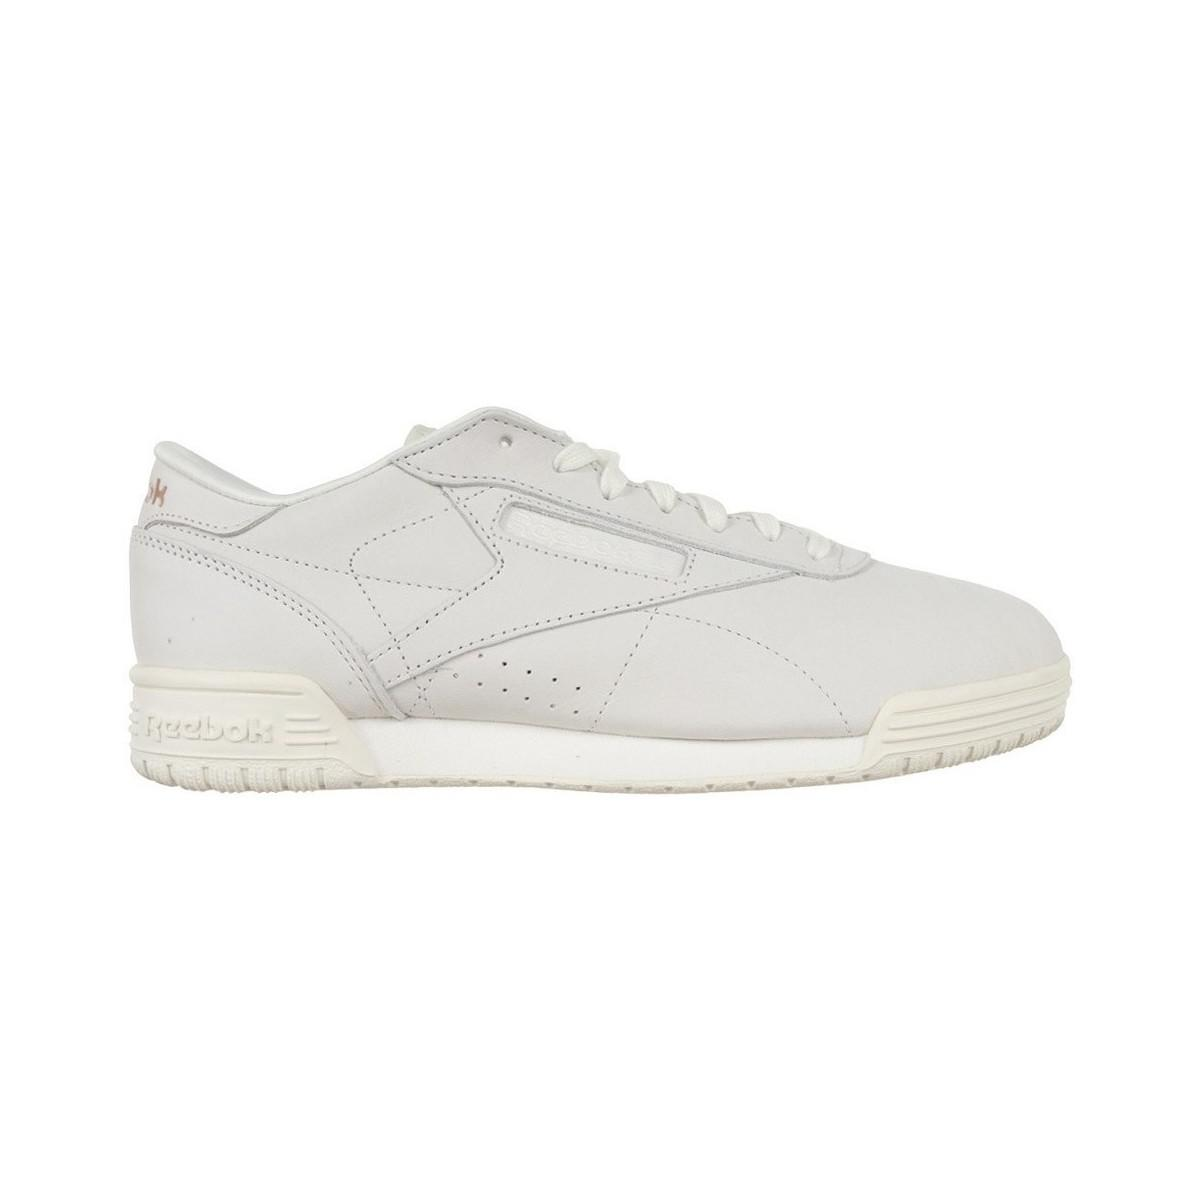 10a4a8c5369f Reebok Classic Exofit Low Cln Ftb Women s Shoes (trainers) In White ...